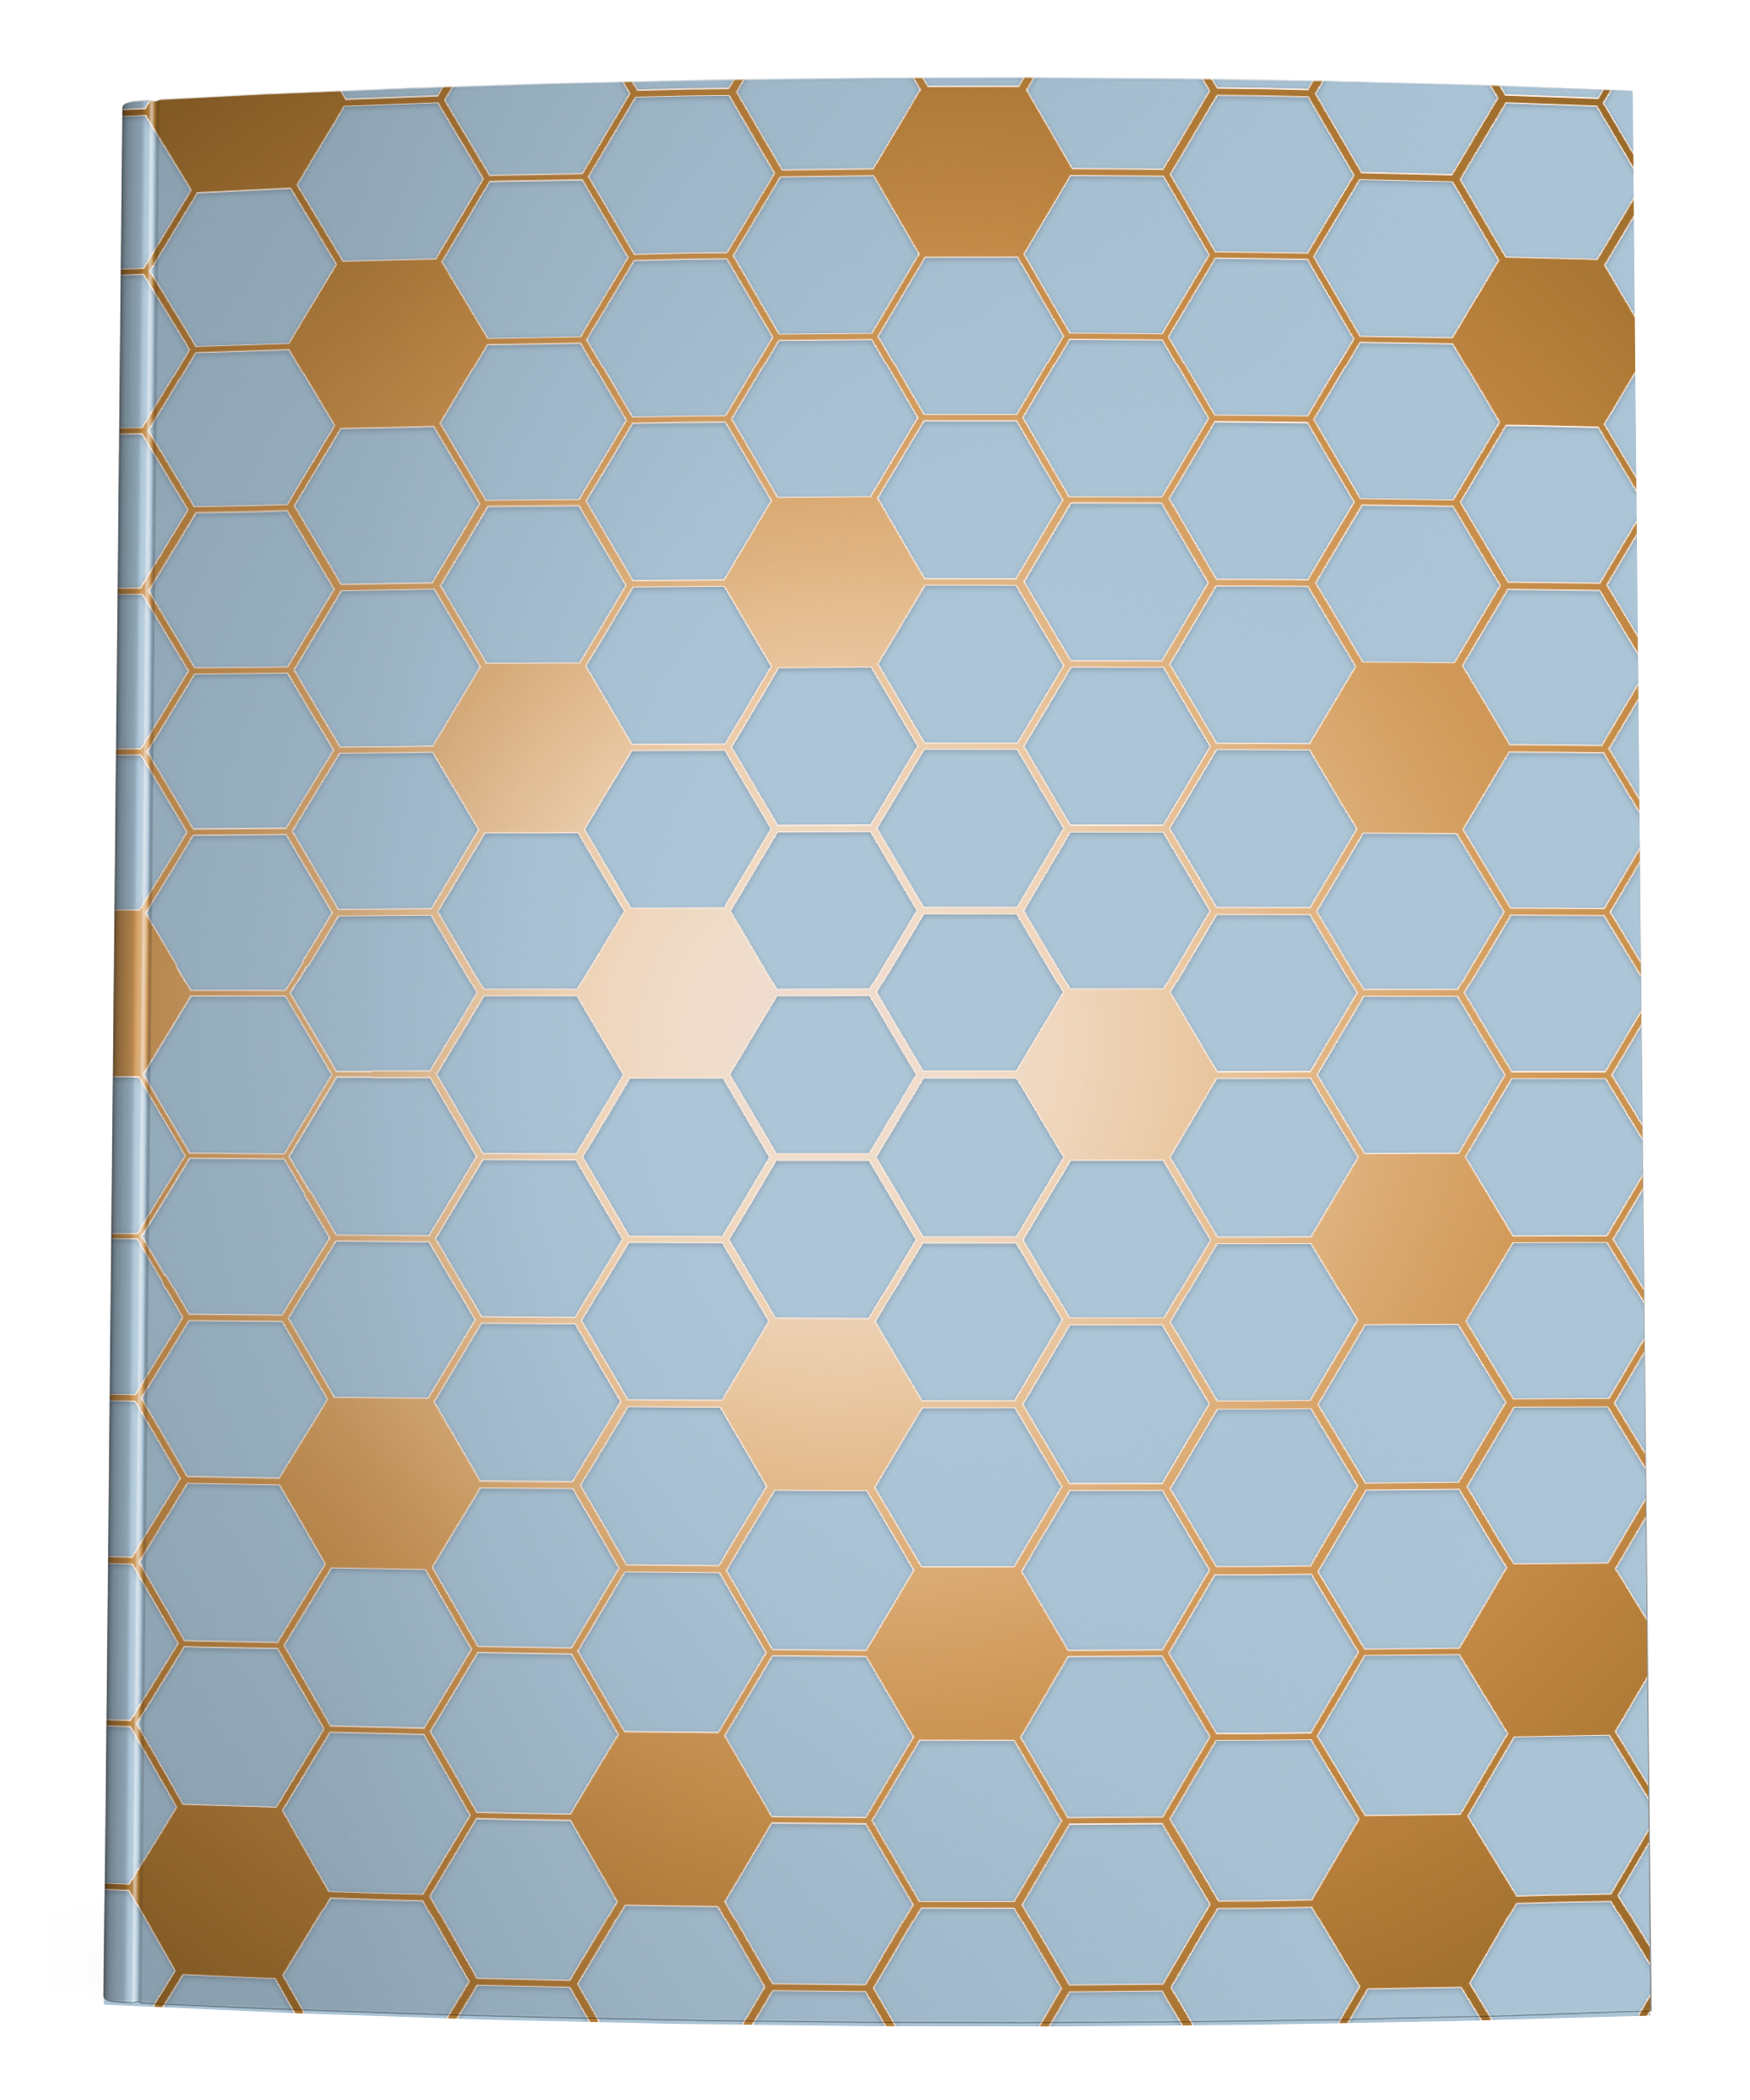 picture relating to Printable Hexagon Graph Paper named Hexagon Graph Paper Laptop computer Blue Brown